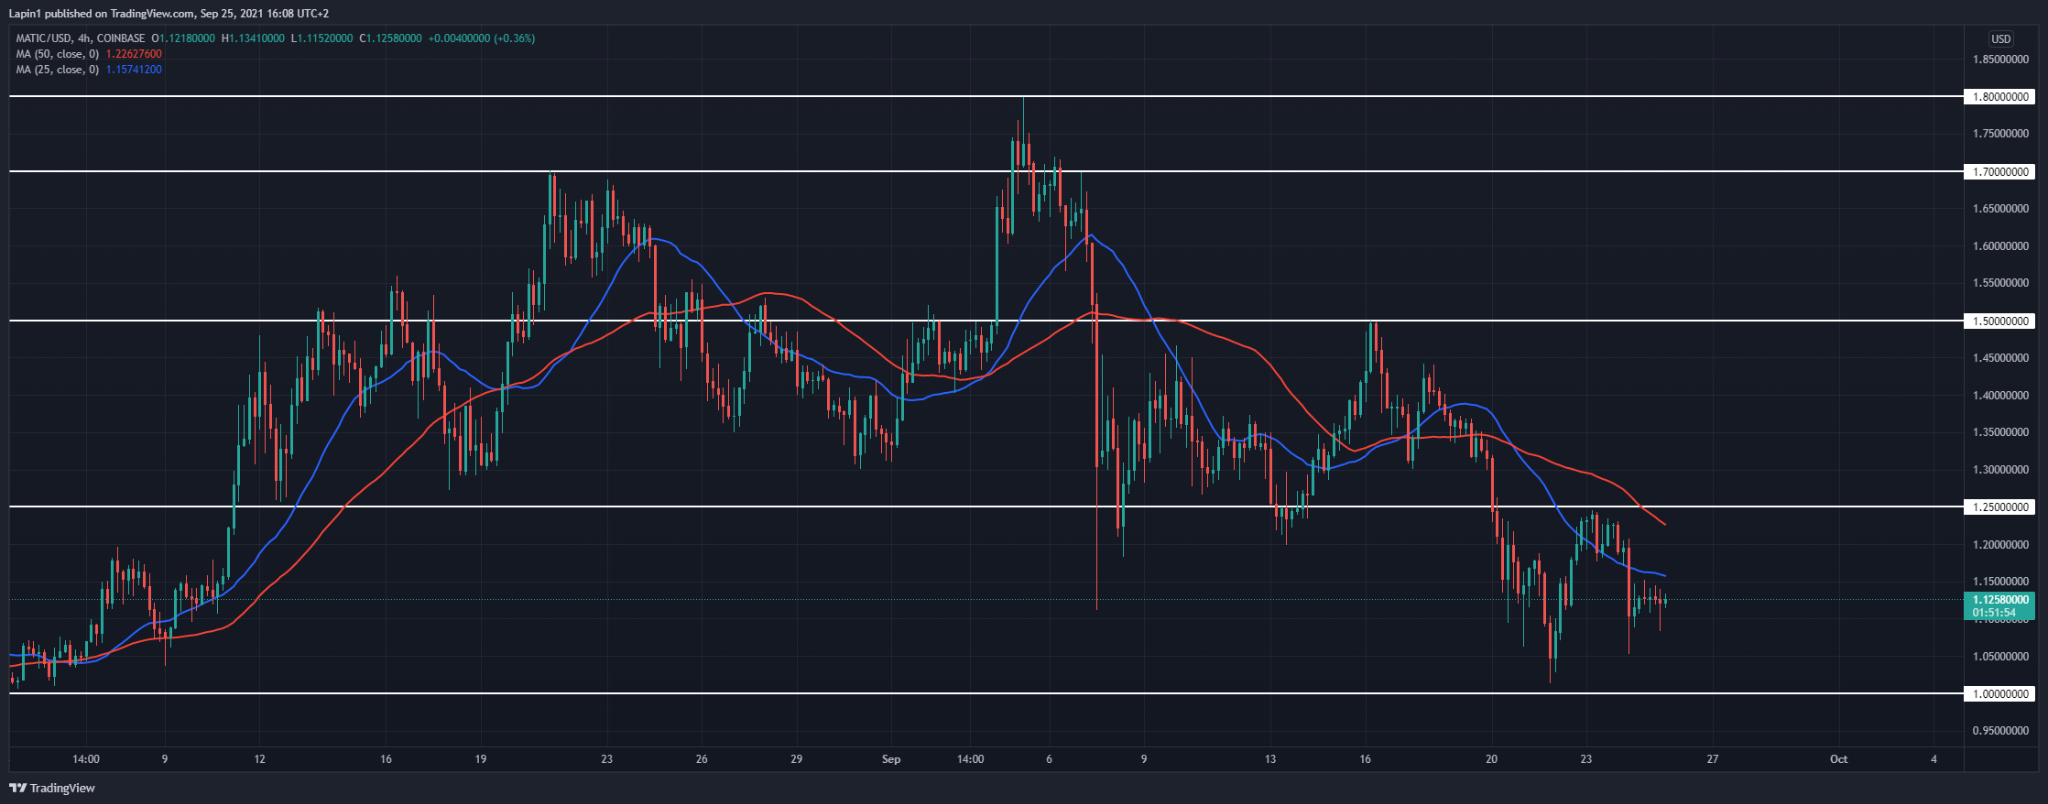 Polygon Price Analysis: MATIC moves lower again, rejection is seen at $1.05